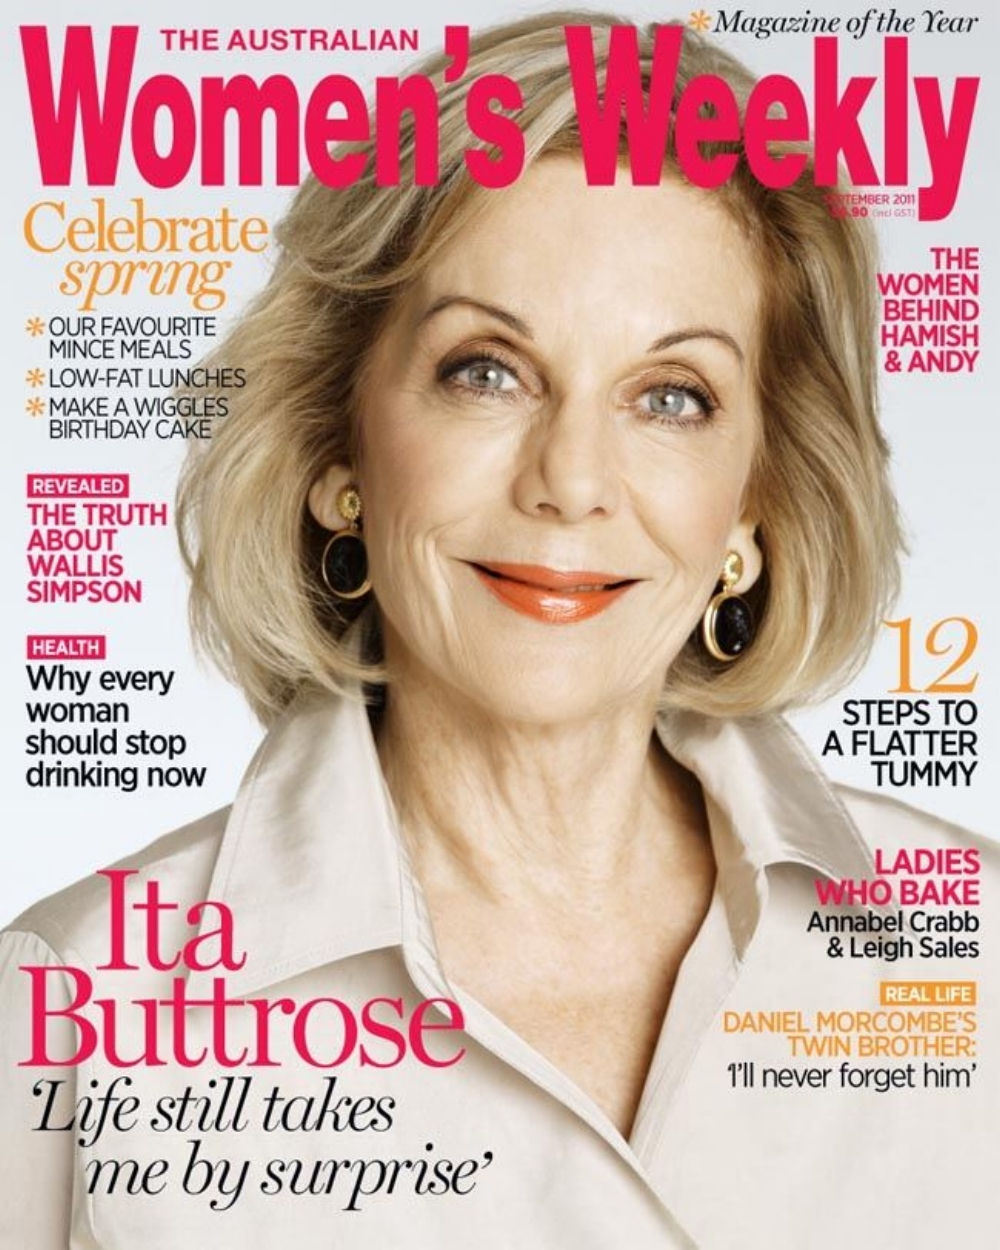 ita_buttrose_aww_september_cover.jpeg